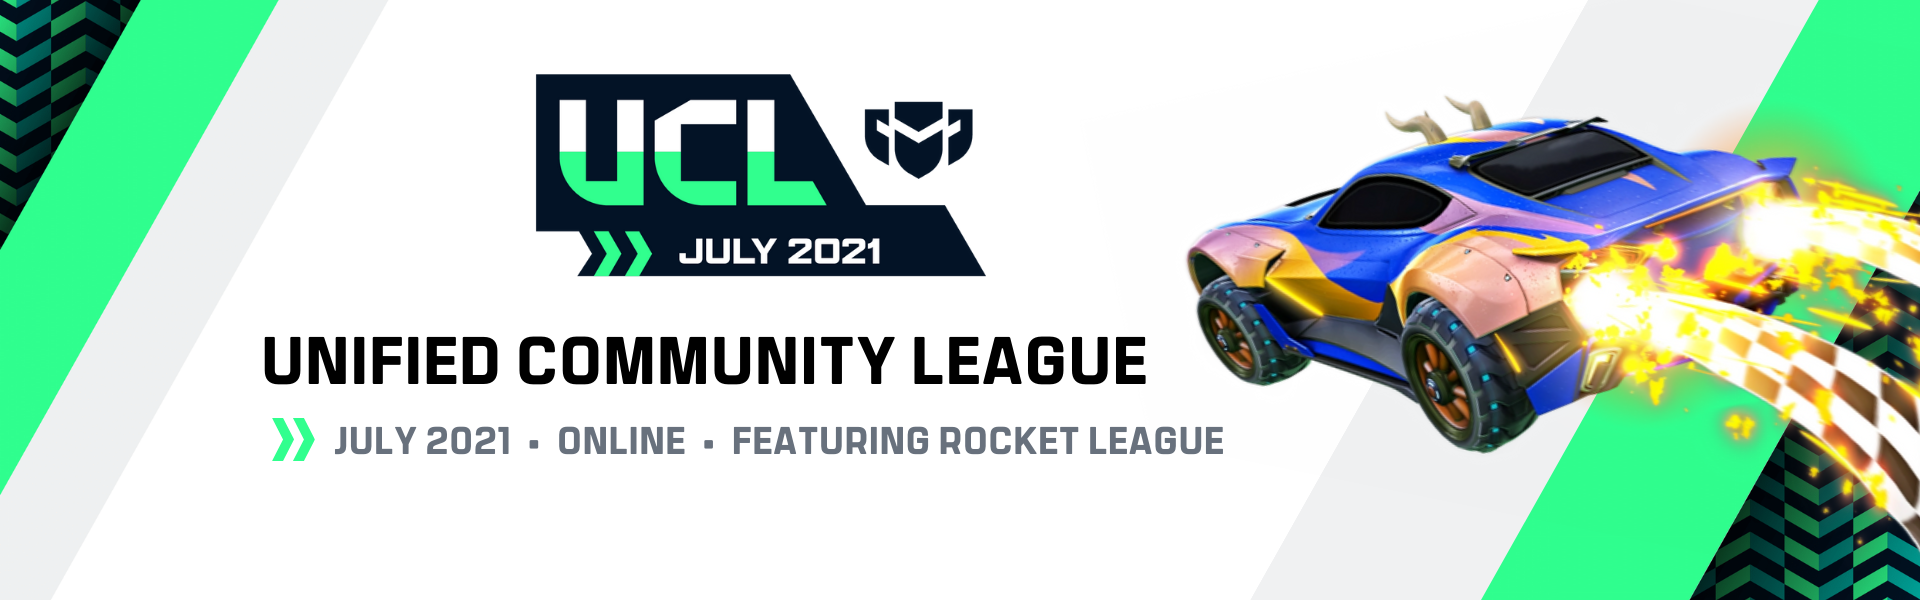 July UCL: Featuring Rocket League